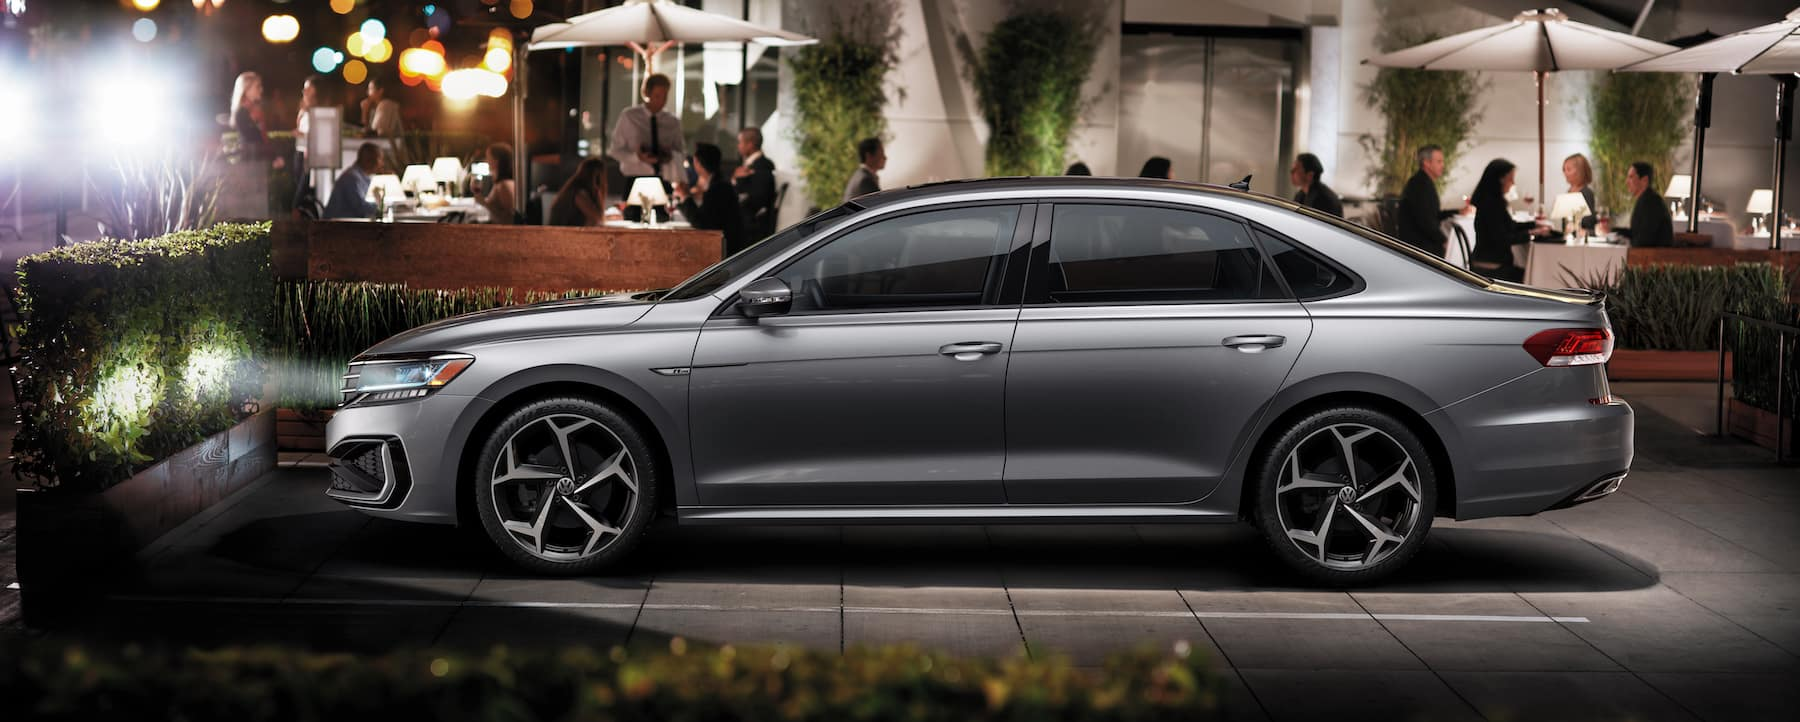 What are the model features of the 2020 Volkswagen Passat? Hanover Volkswagen | 2020 passat parked outside a resturant